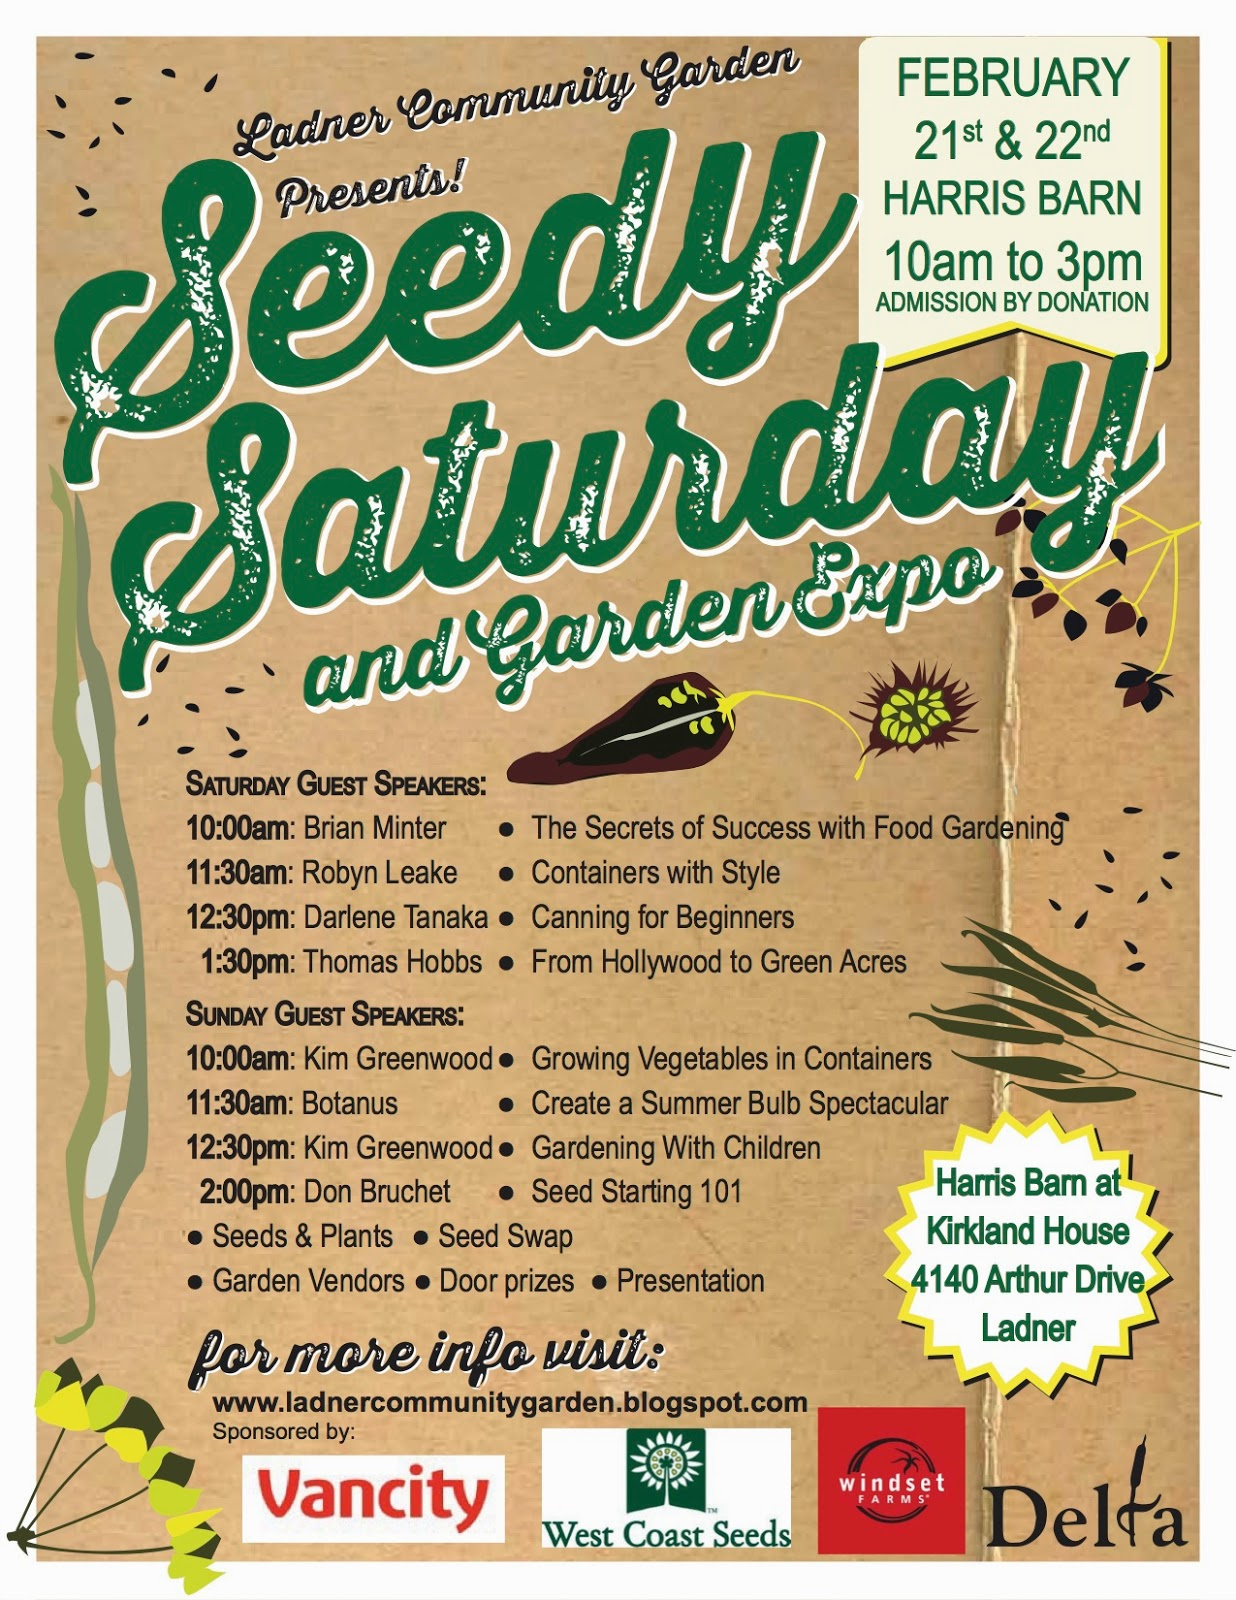 Ladner Community Garden Just Two Days to Go